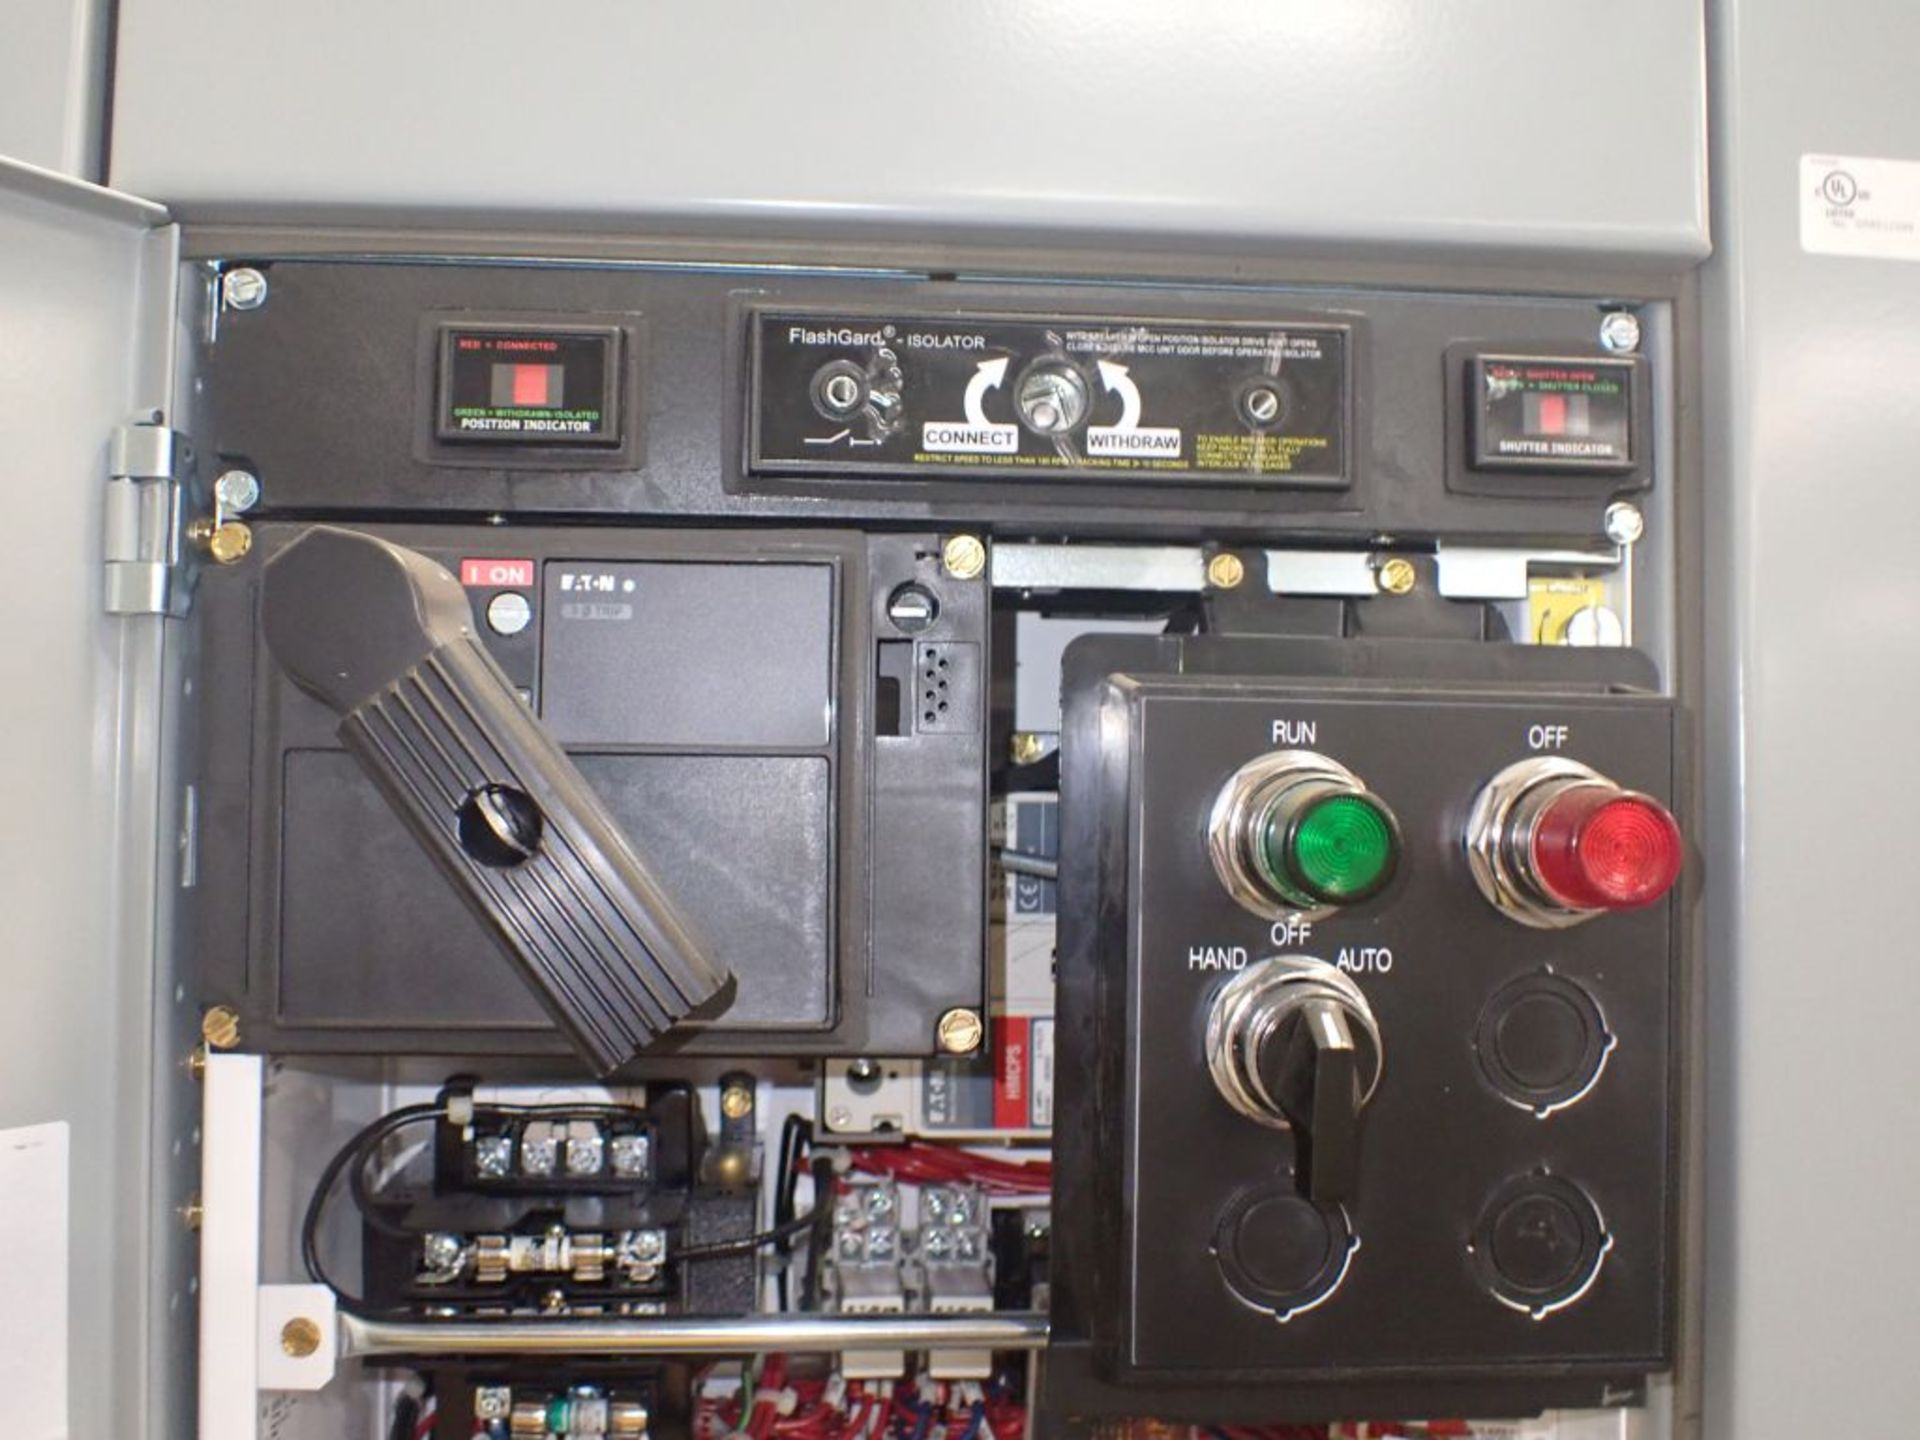 Eaton Freedom Flashgard Motor Control Center w/Components | (5) F206-15A-10HP; (4) F206-30A-10HP; ( - Image 26 of 84